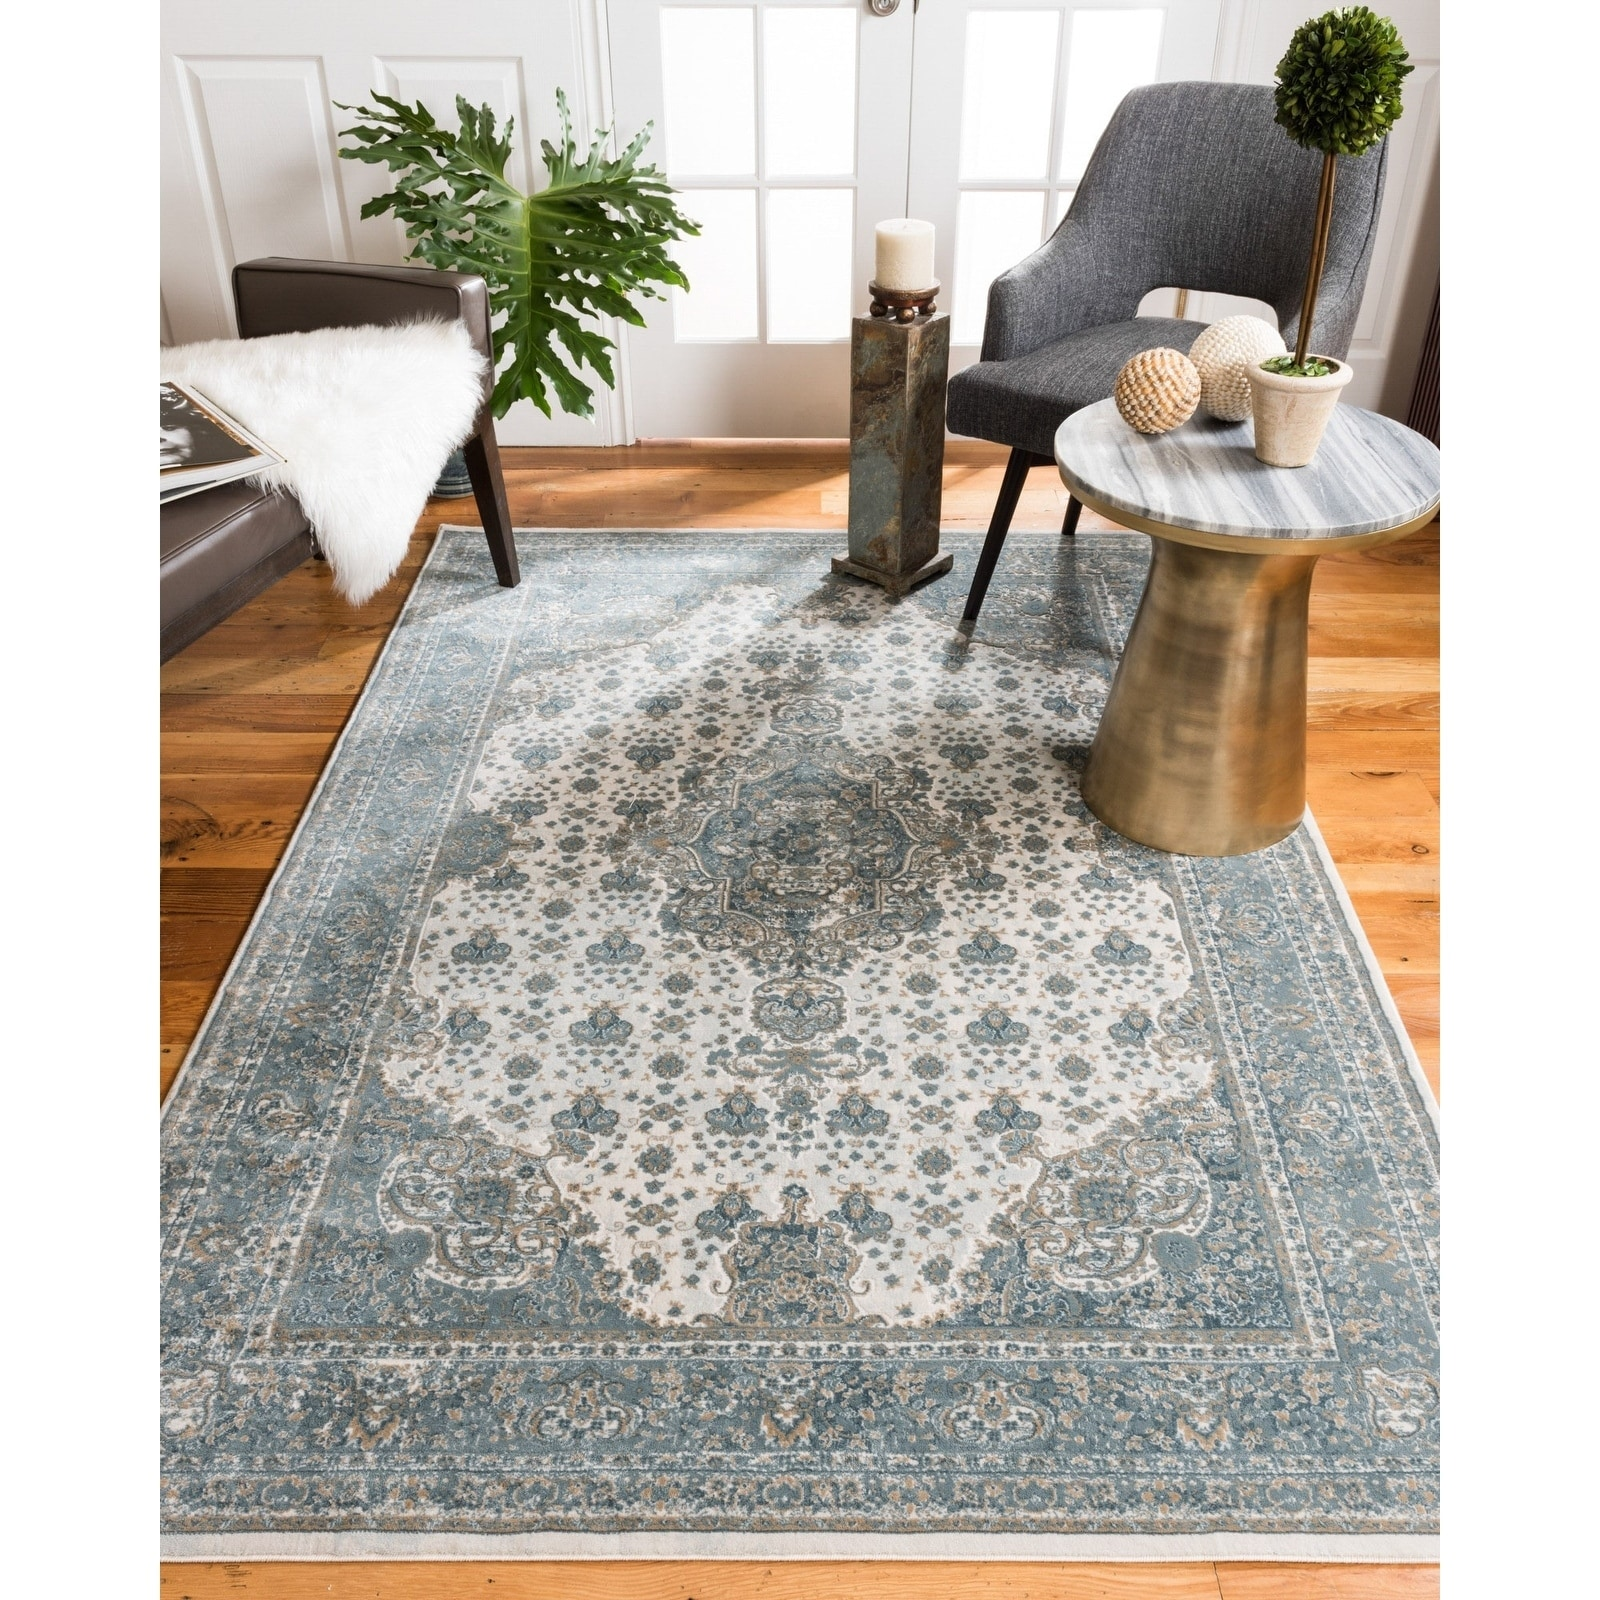 Natural Area Rugs Vintage Oriental Solara Polypropylene Rectangle Rug (3'X5') Blue - 6' x 9'